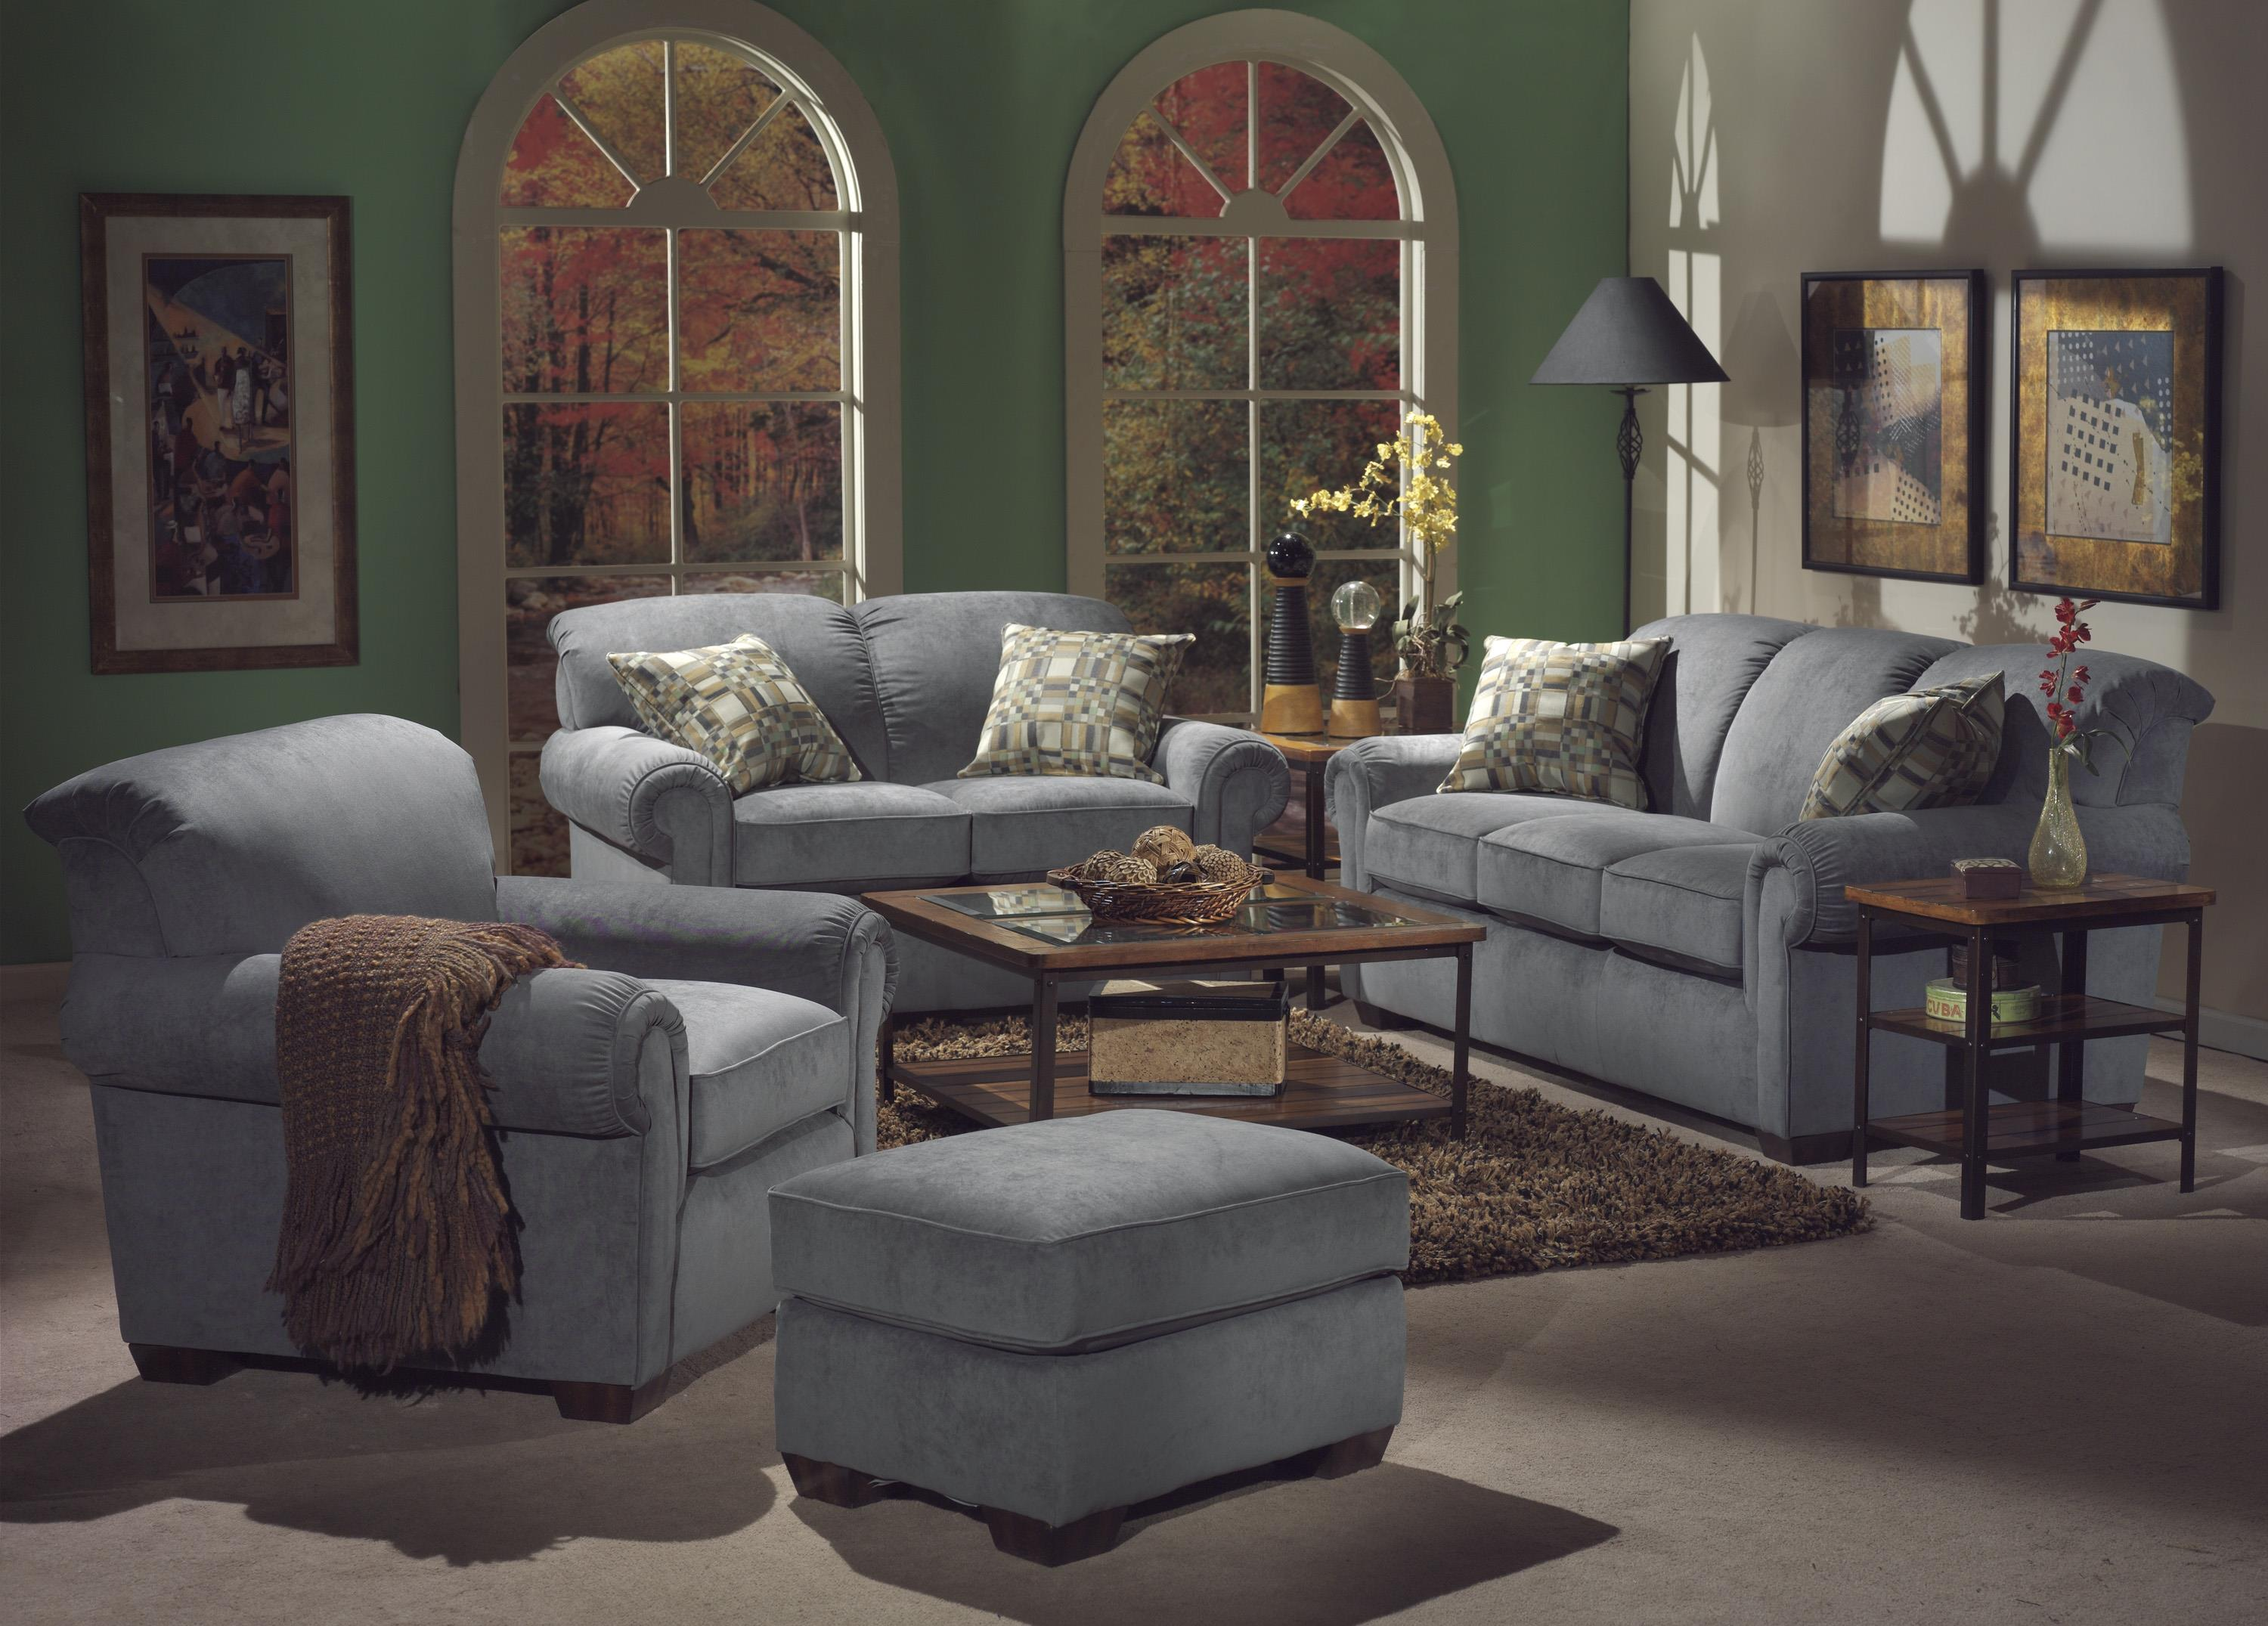 Flexsteel Main Street Stationary Living Room Group - Item Number: 5988 Living Room Group 2